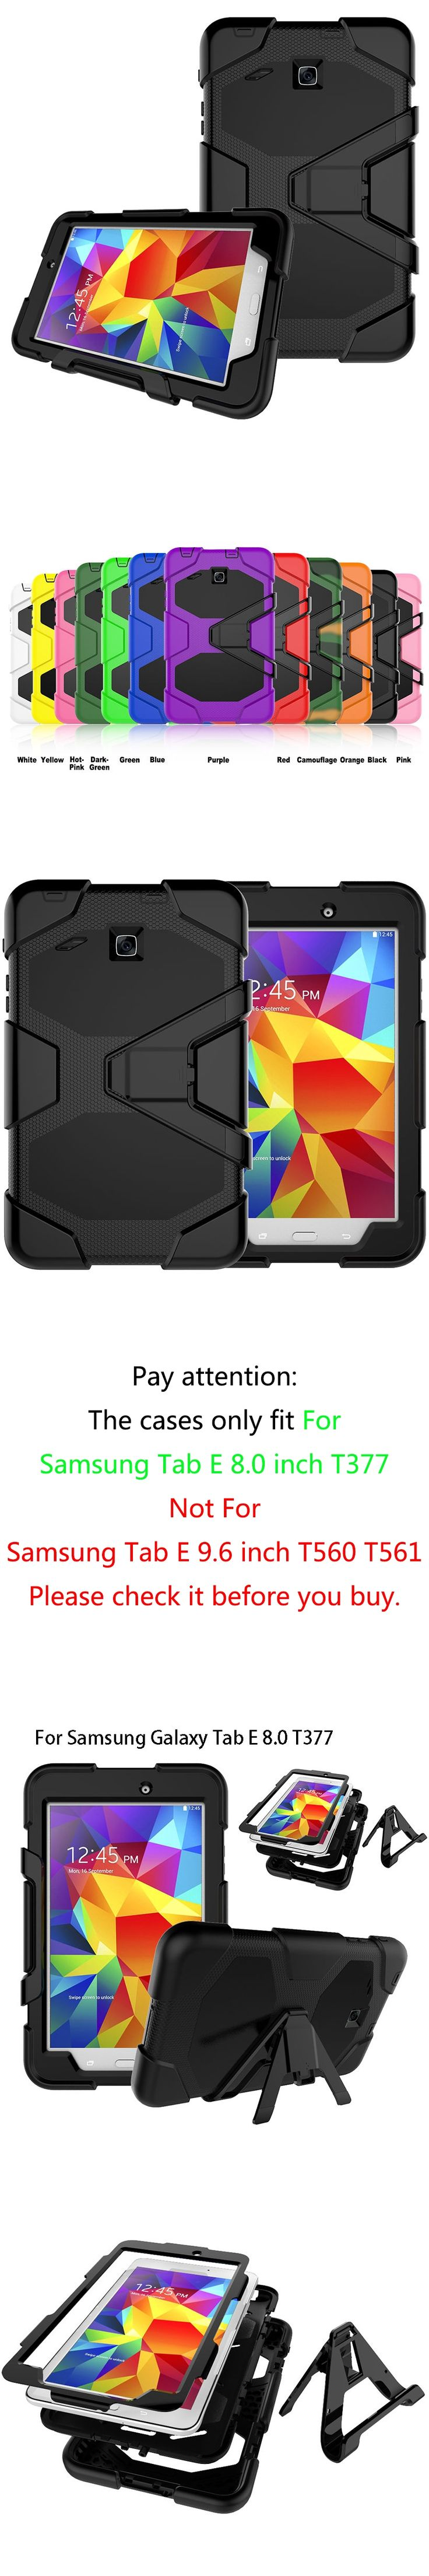 Armor Cover For Samsung Galaxy Tab E 8.0 Case T377 SM-T377V Cases Kickstand Tablet Shockproof Heavy Duty With Stand Shell Funda